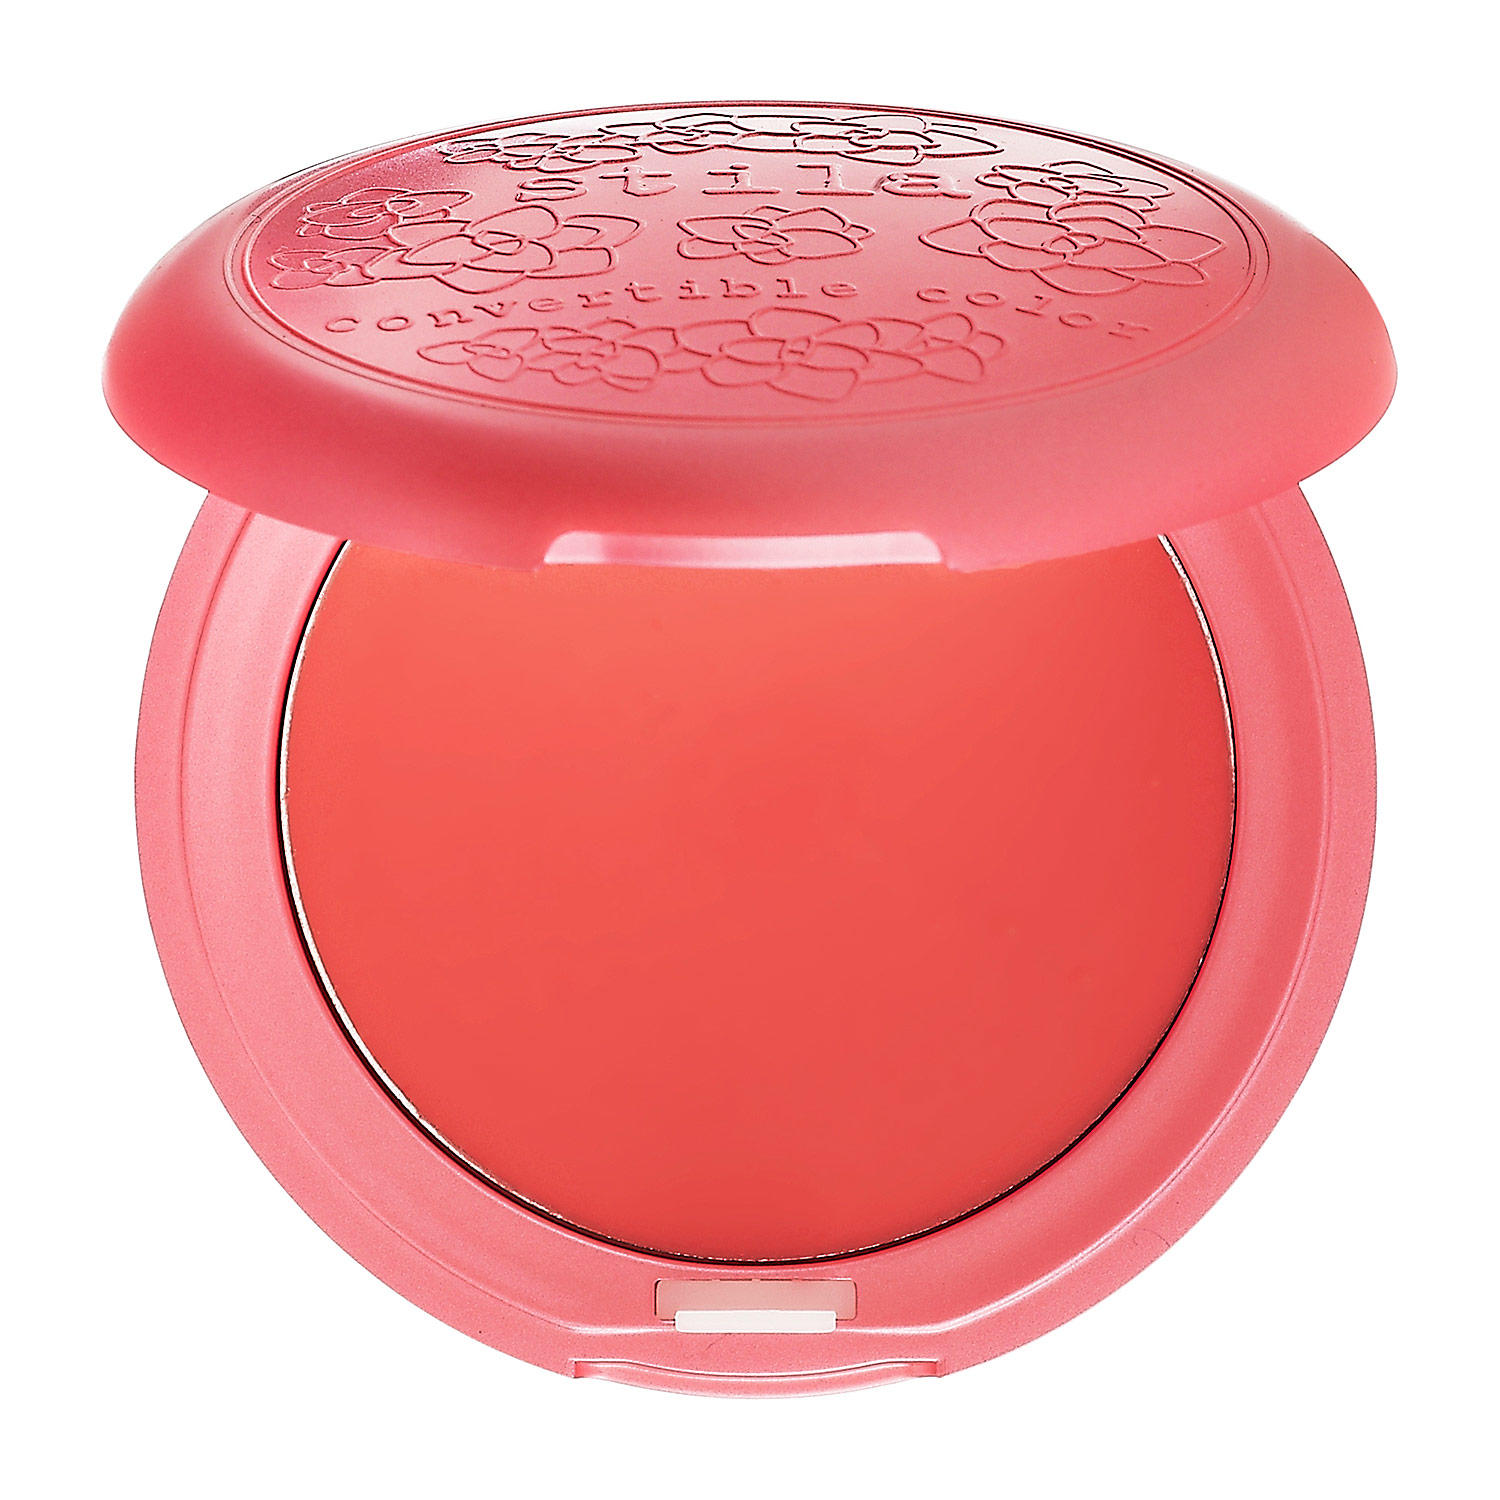 Stila Convertible Color Dual Lip and Cheek Cream Petunia